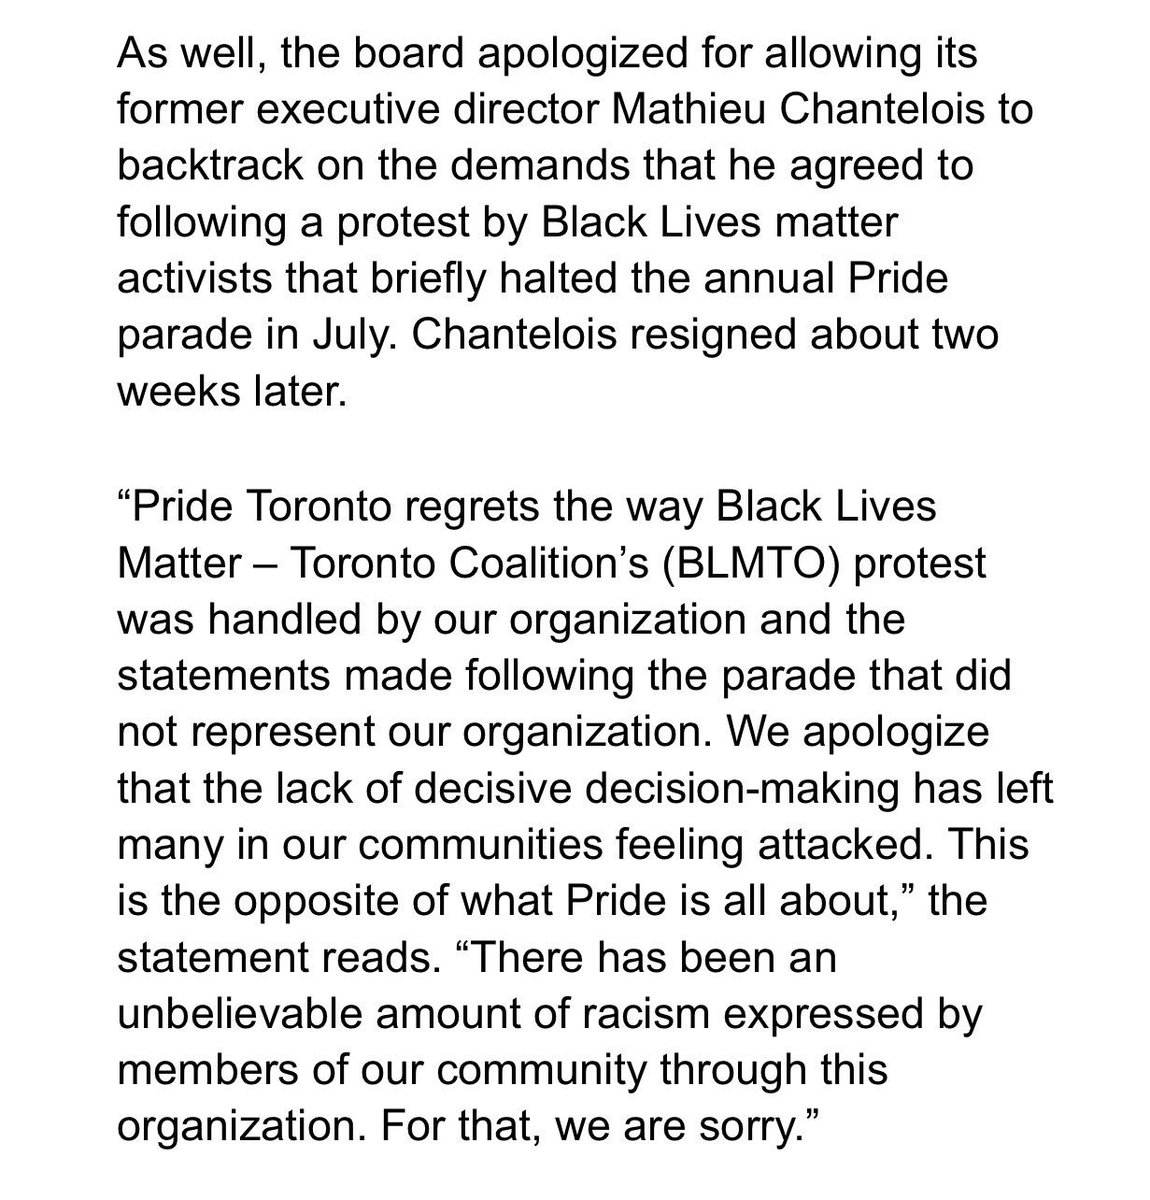 Pride Toronto issues apology for 'history of anti-blackness' https://t.co/NyowYp0H2t #prideto #canqueer #topoli https://t.co/LIIfV7GRkV